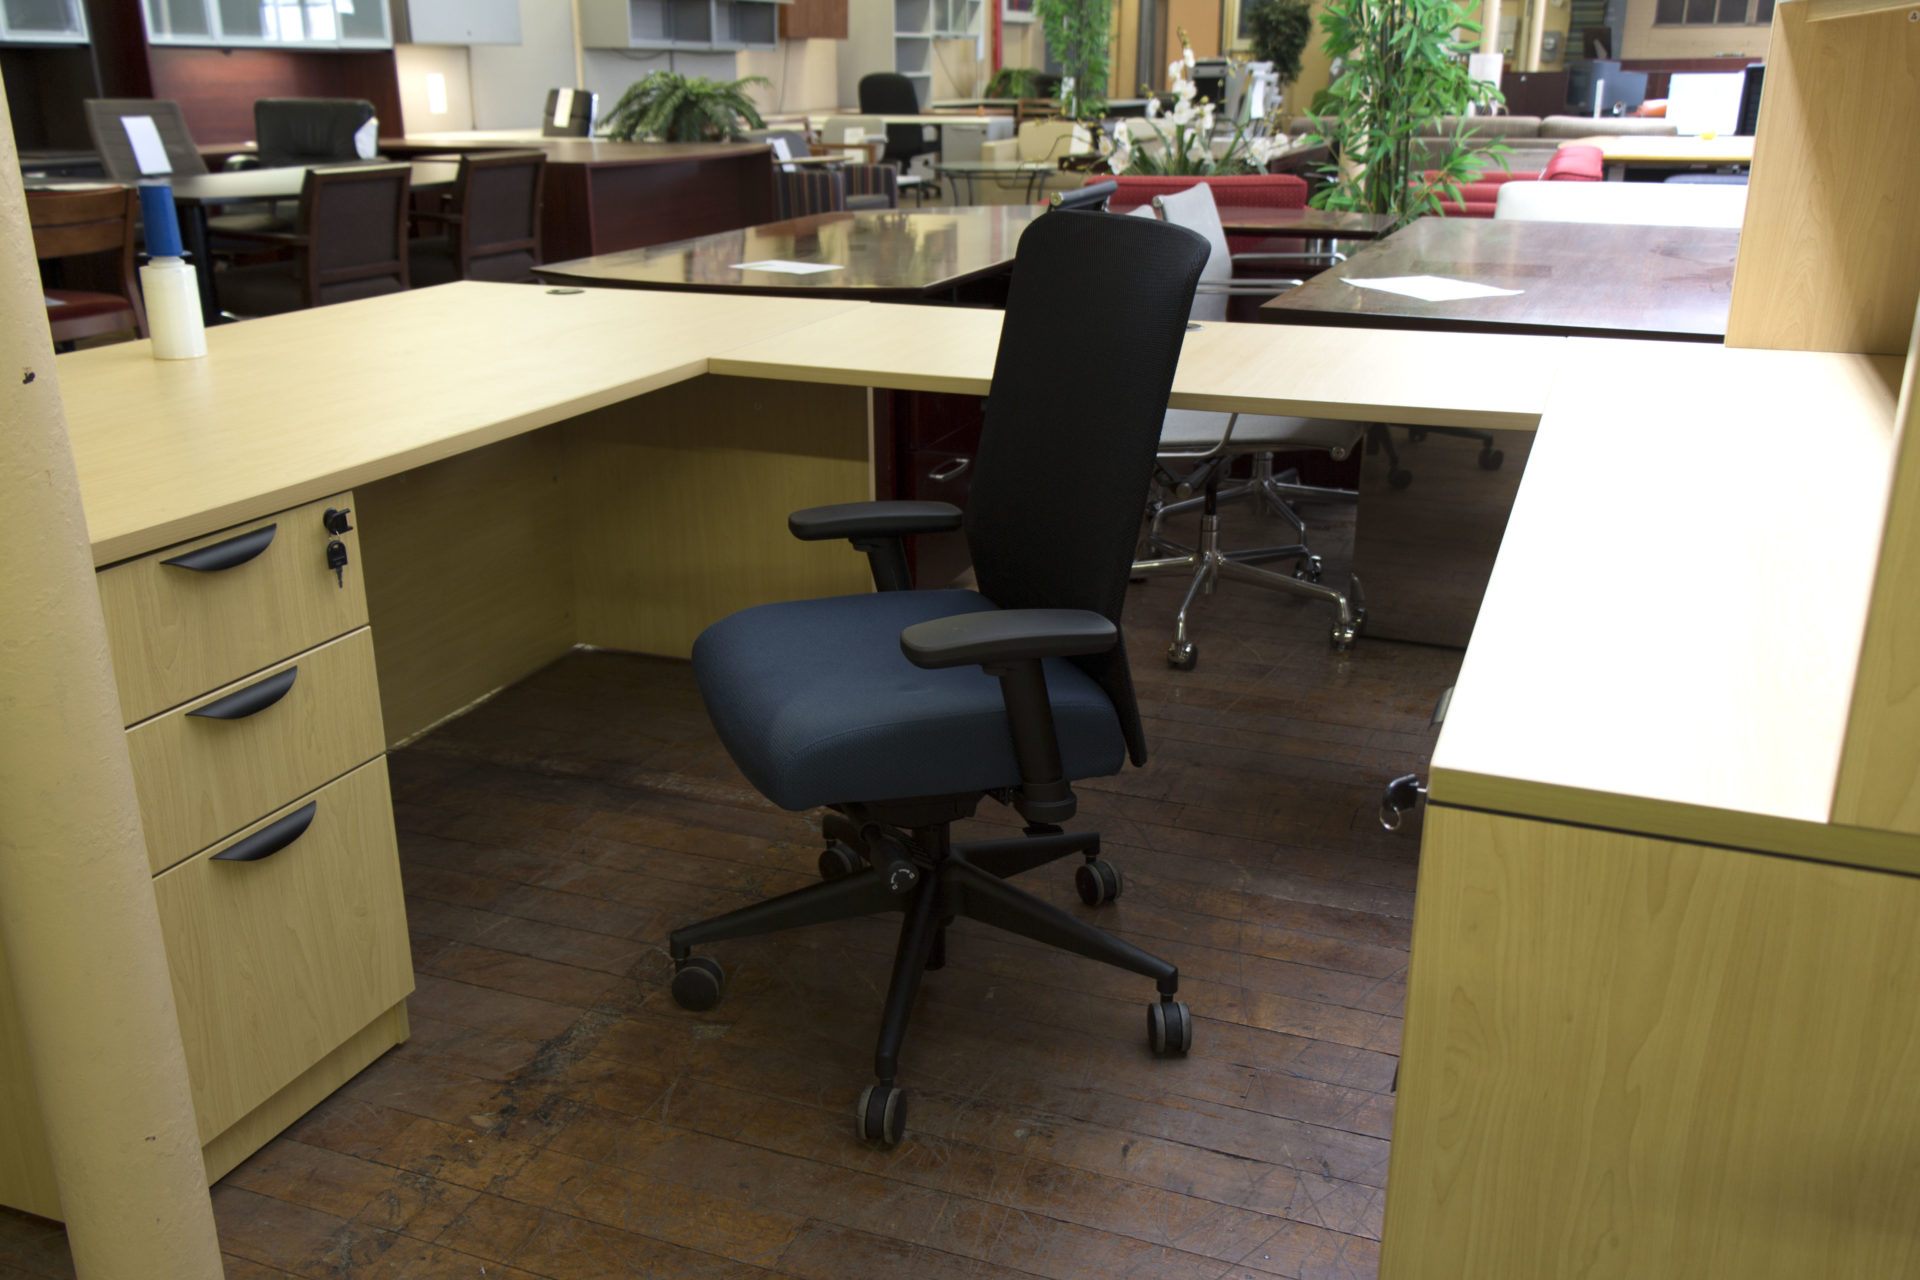 peartreeofficefurniture_peartreeofficefurniture_mg_5524.jpg